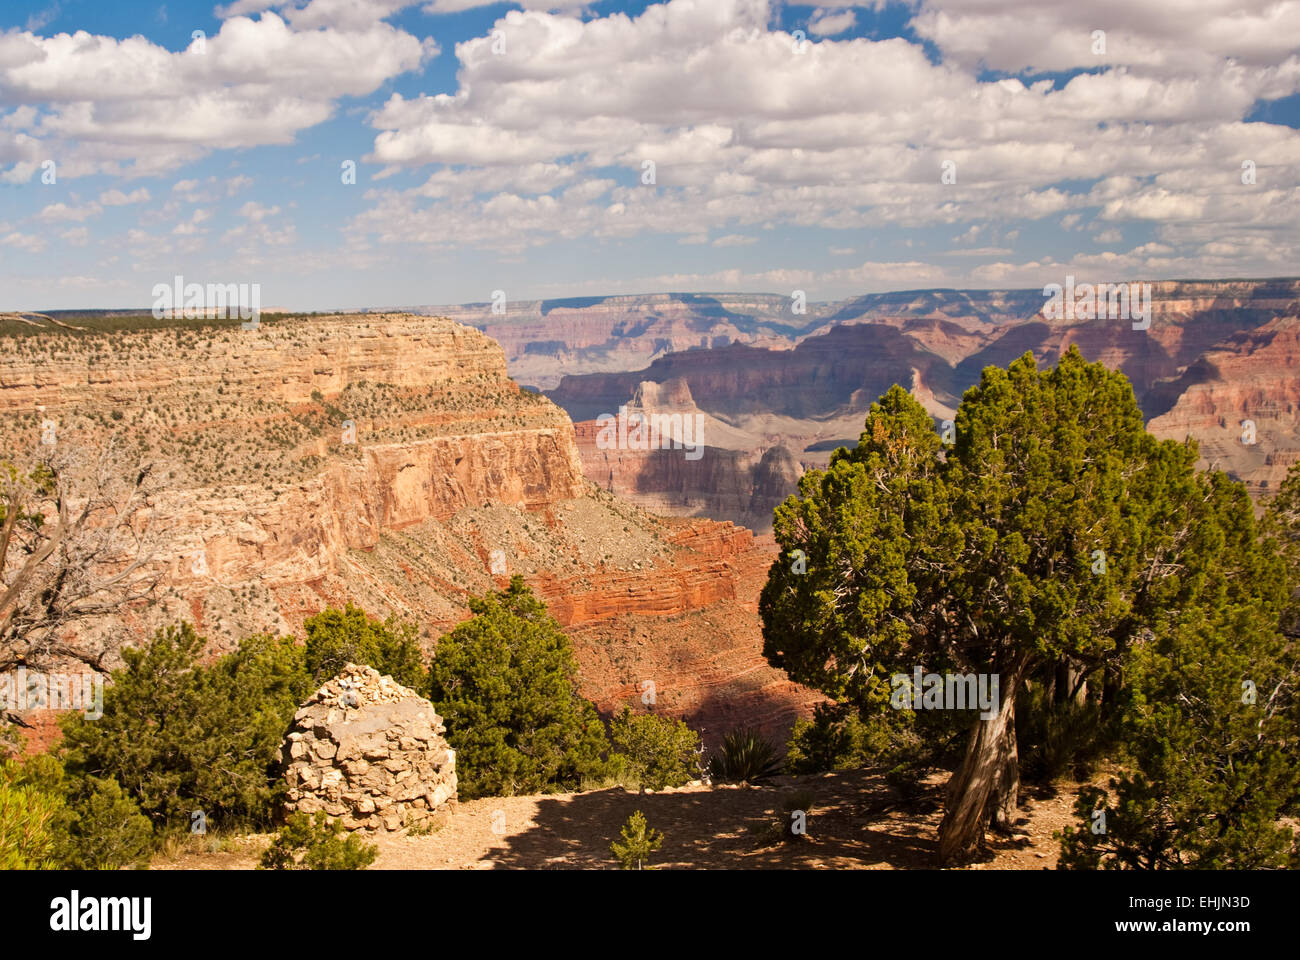 Grandeur of the Grand Canyon - Stock Image